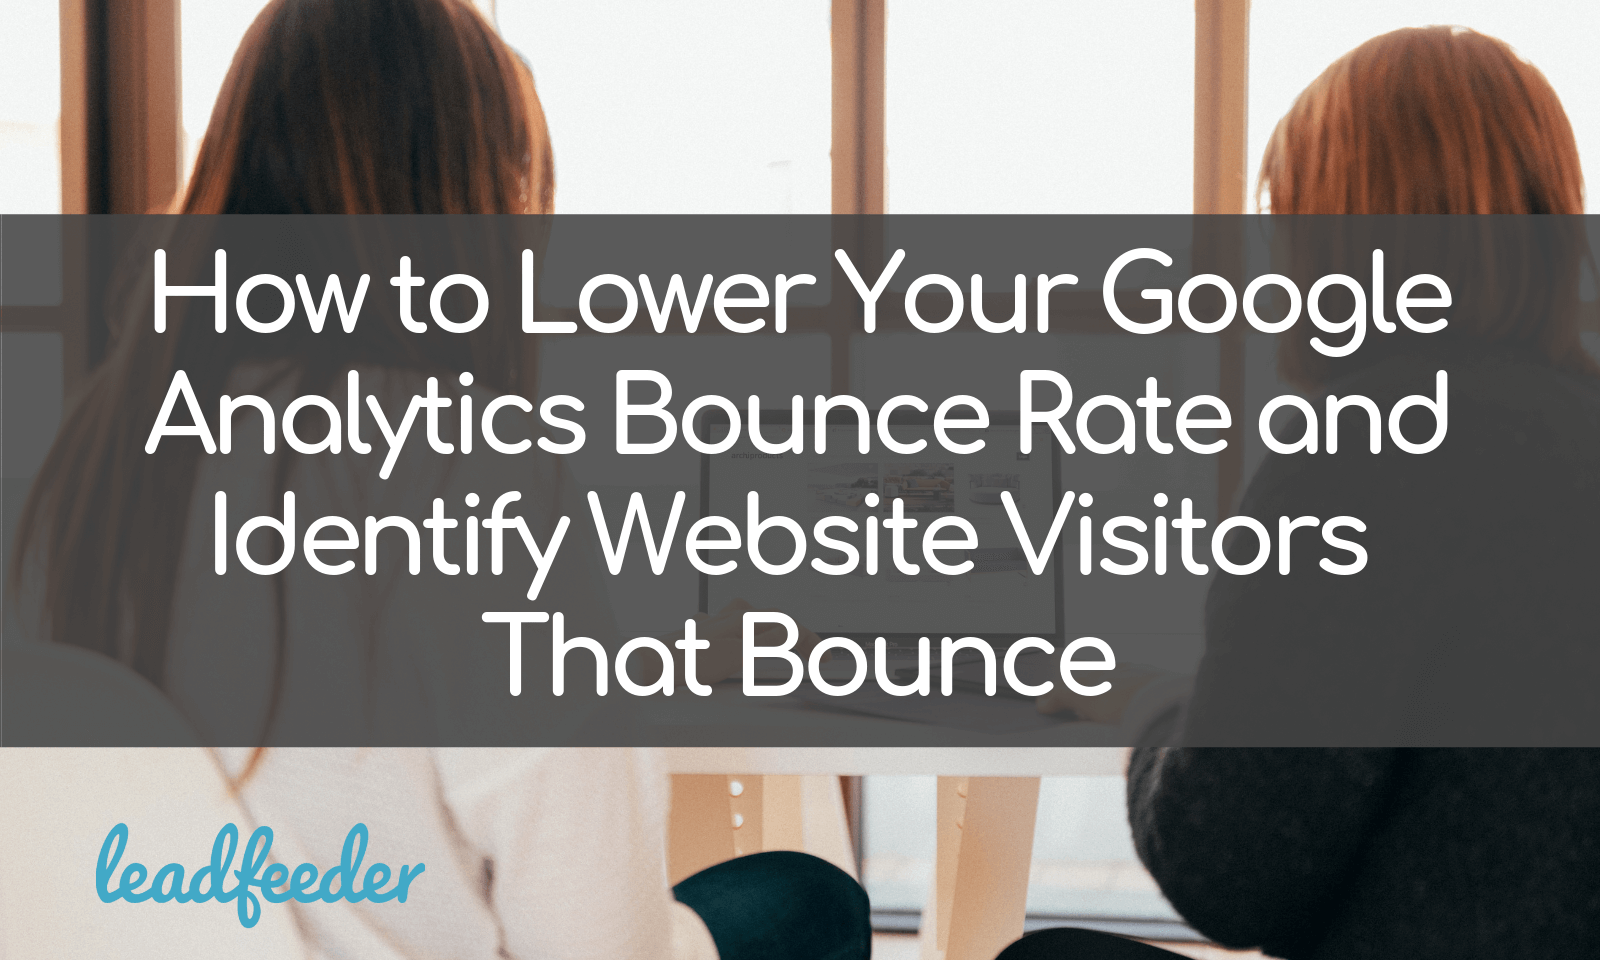 How to Lower Your Google Analytics Bounce Rate and Identify Website Visitors That Bounce